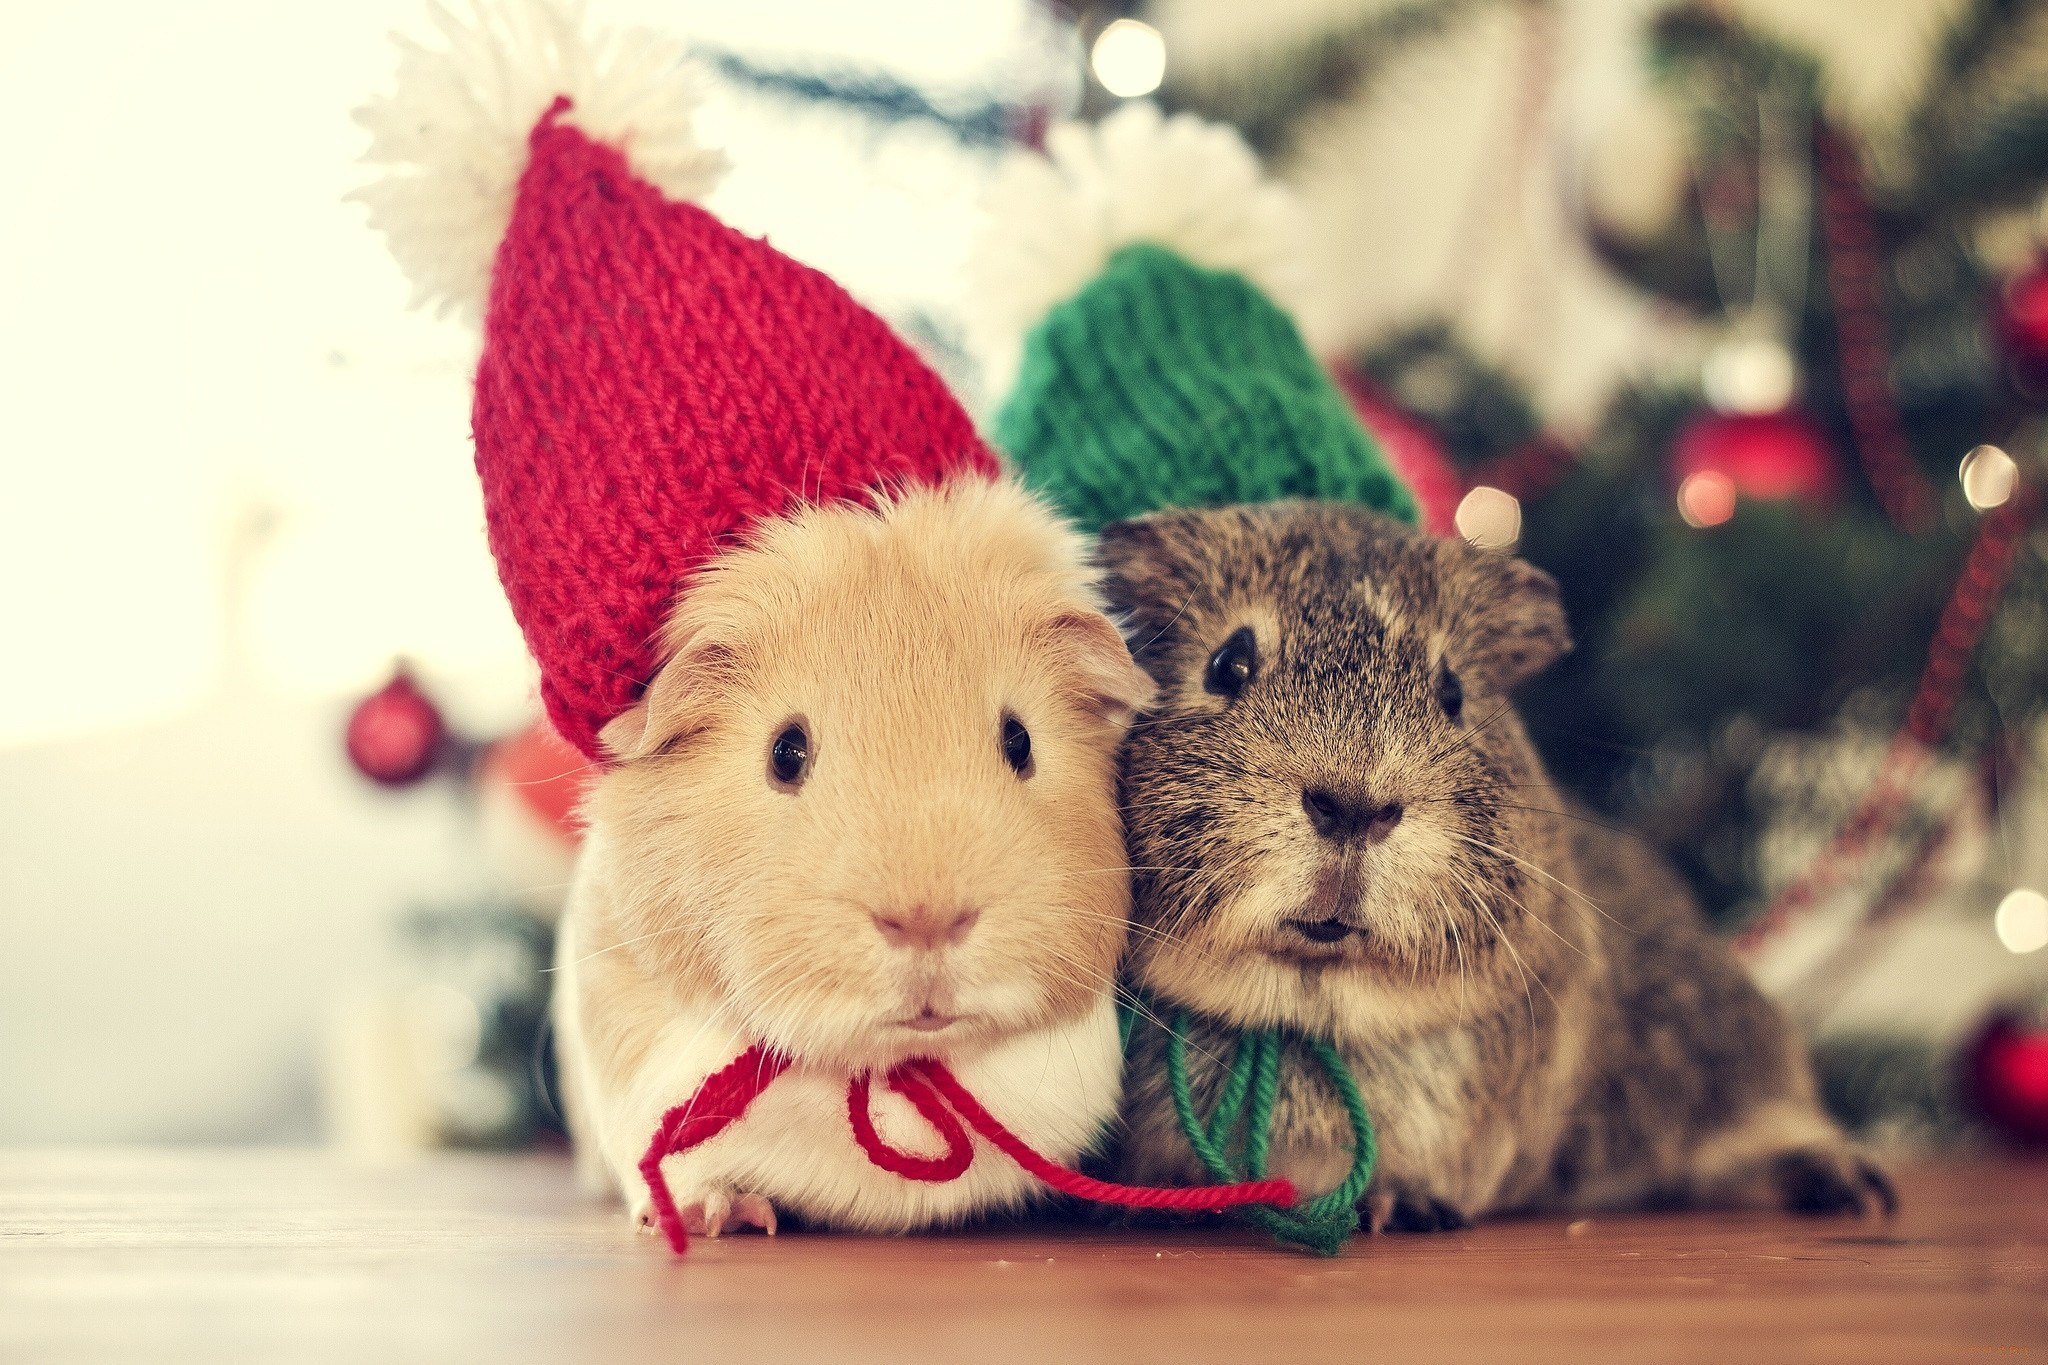 Christmas Animals Cute Winter Cold Cozy Couple Holiday Mouse wallpaper .